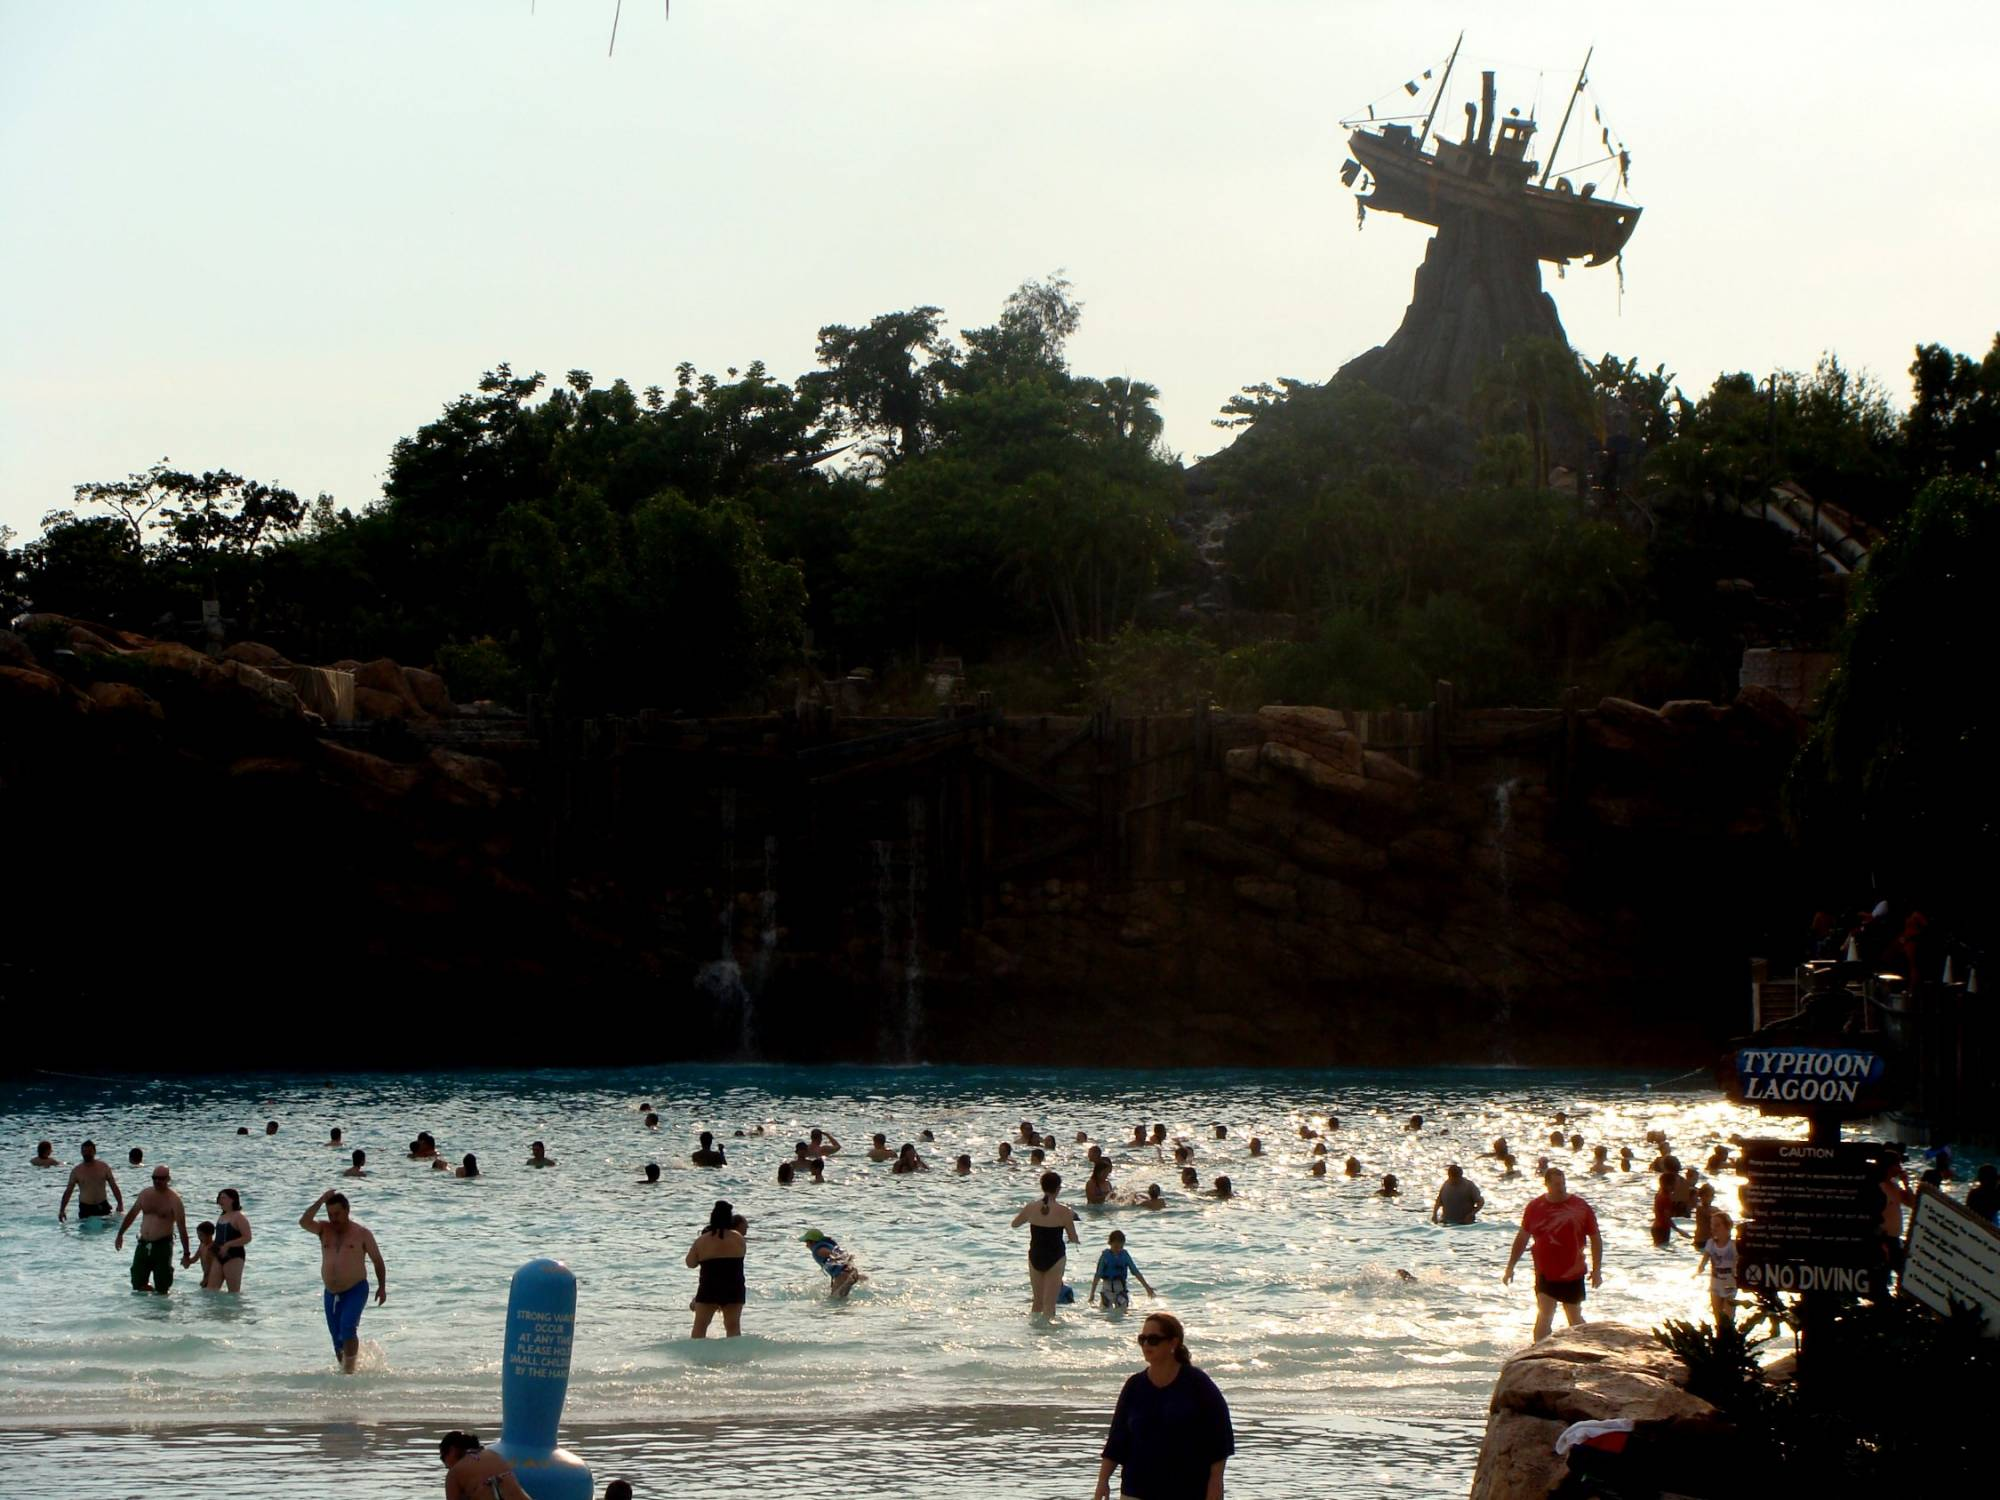 Dive into the Typhoon Lagoon water park at Walt Disney World | PassPorter.com